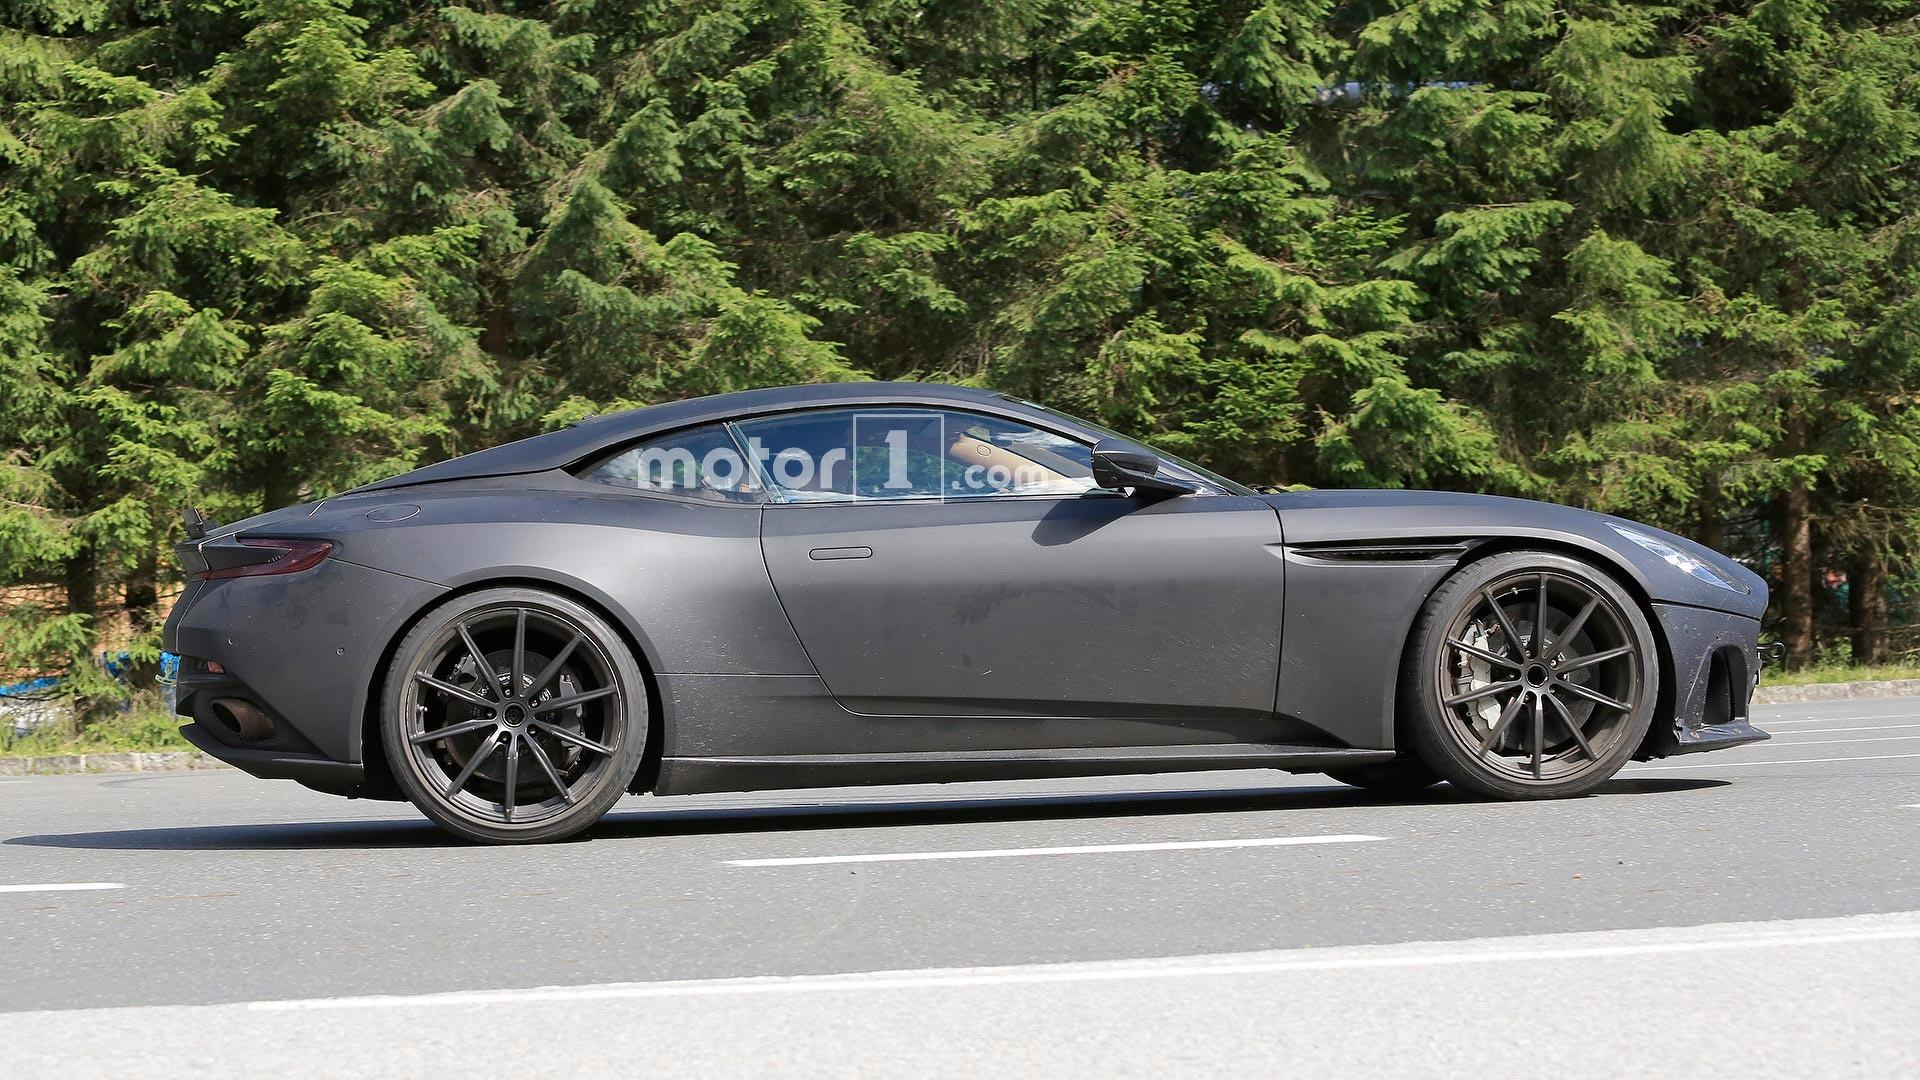 Aston Martin Db11 S Spied With Matte Black Body Lower